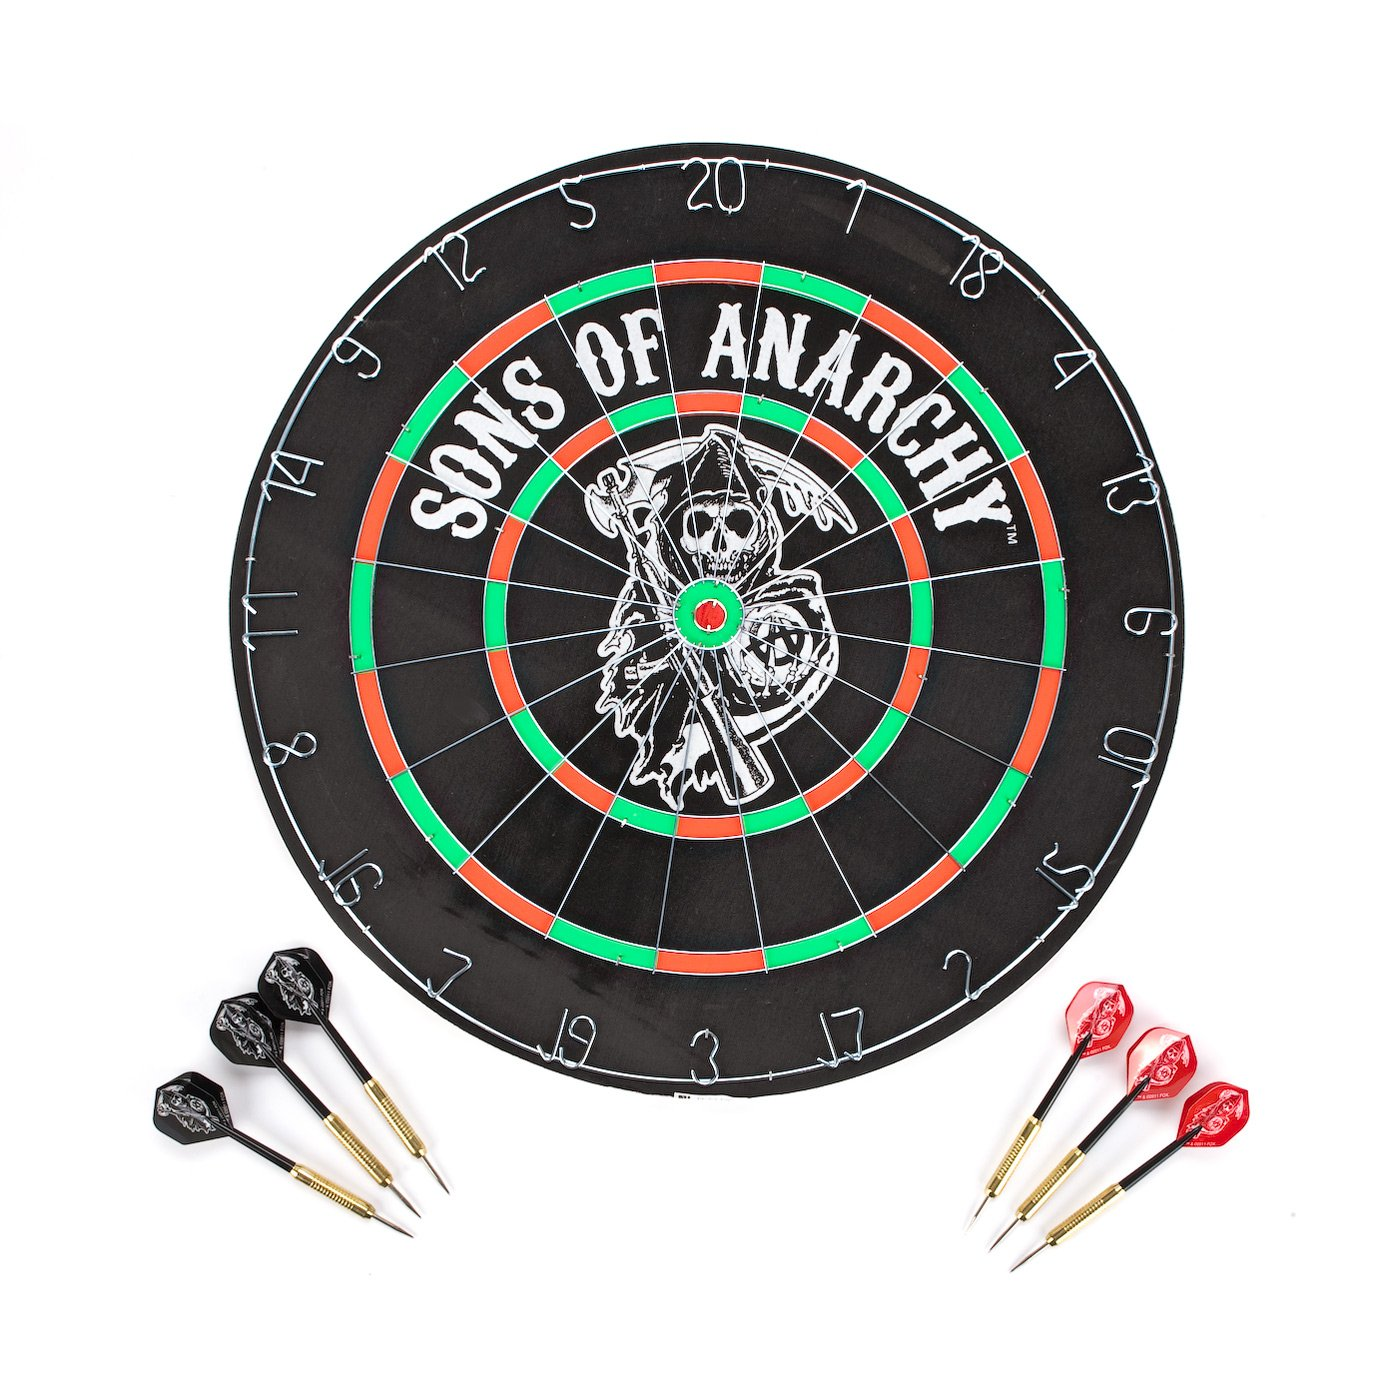 Sons Of Anarchy Dart Board günstig